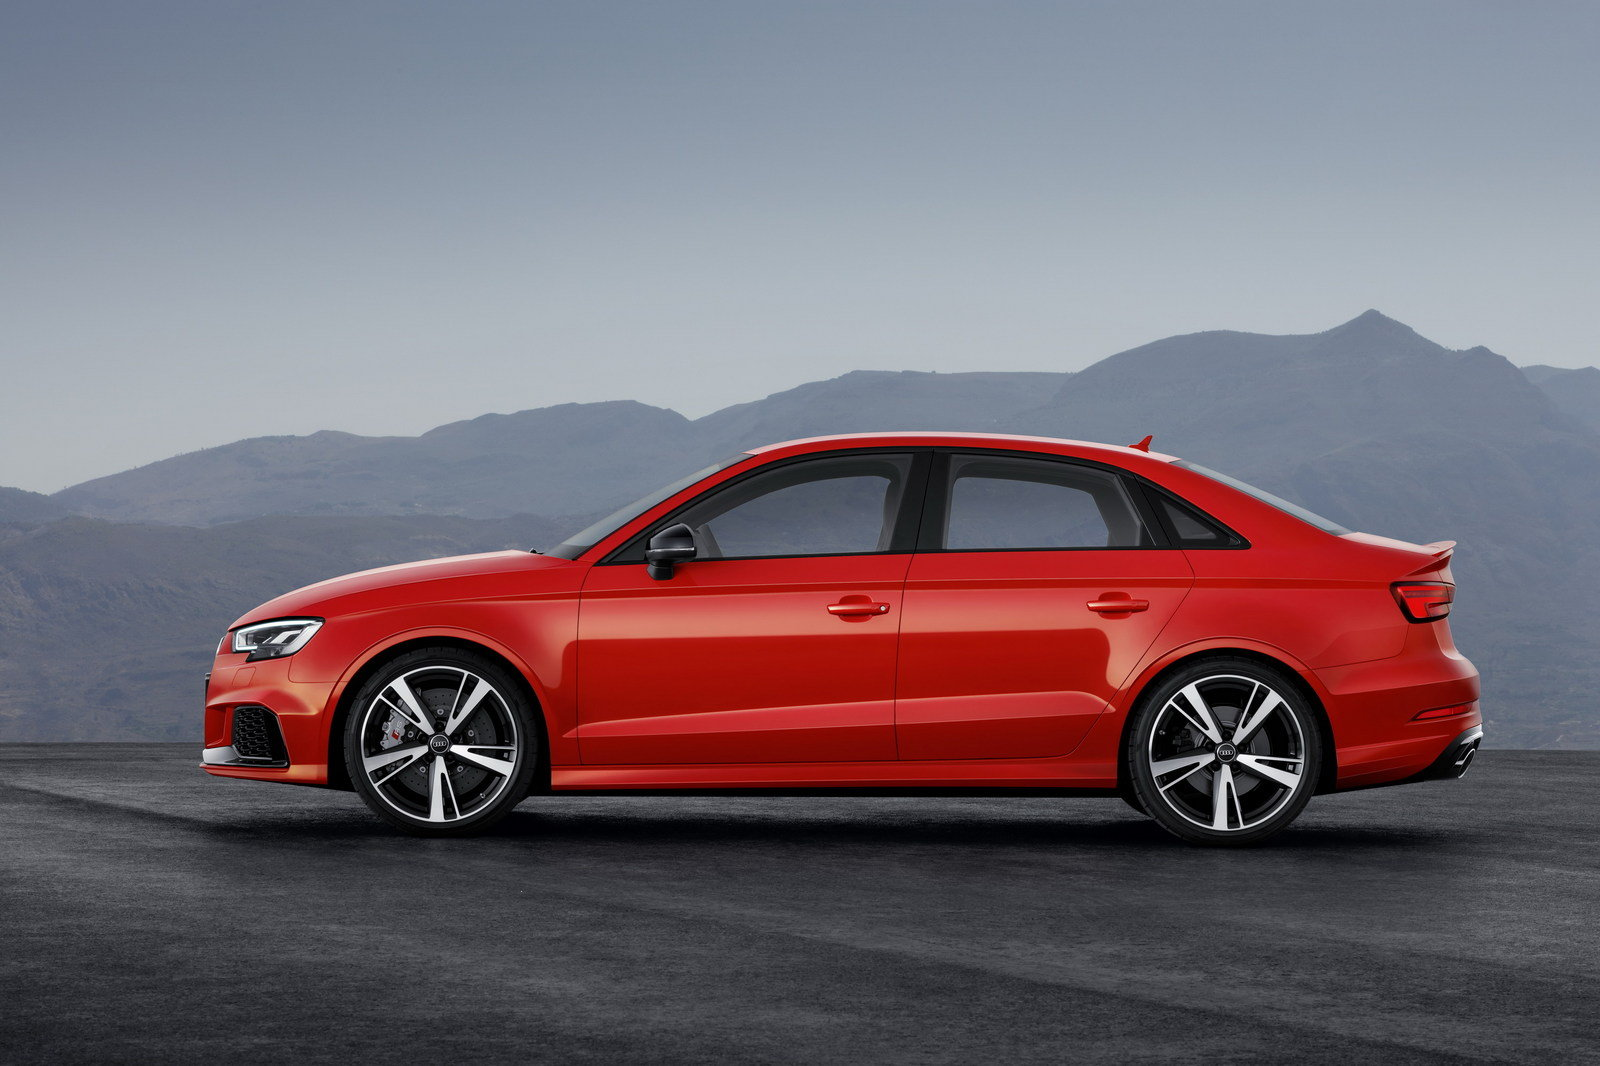 2018 Audi RS5 coupe red colors